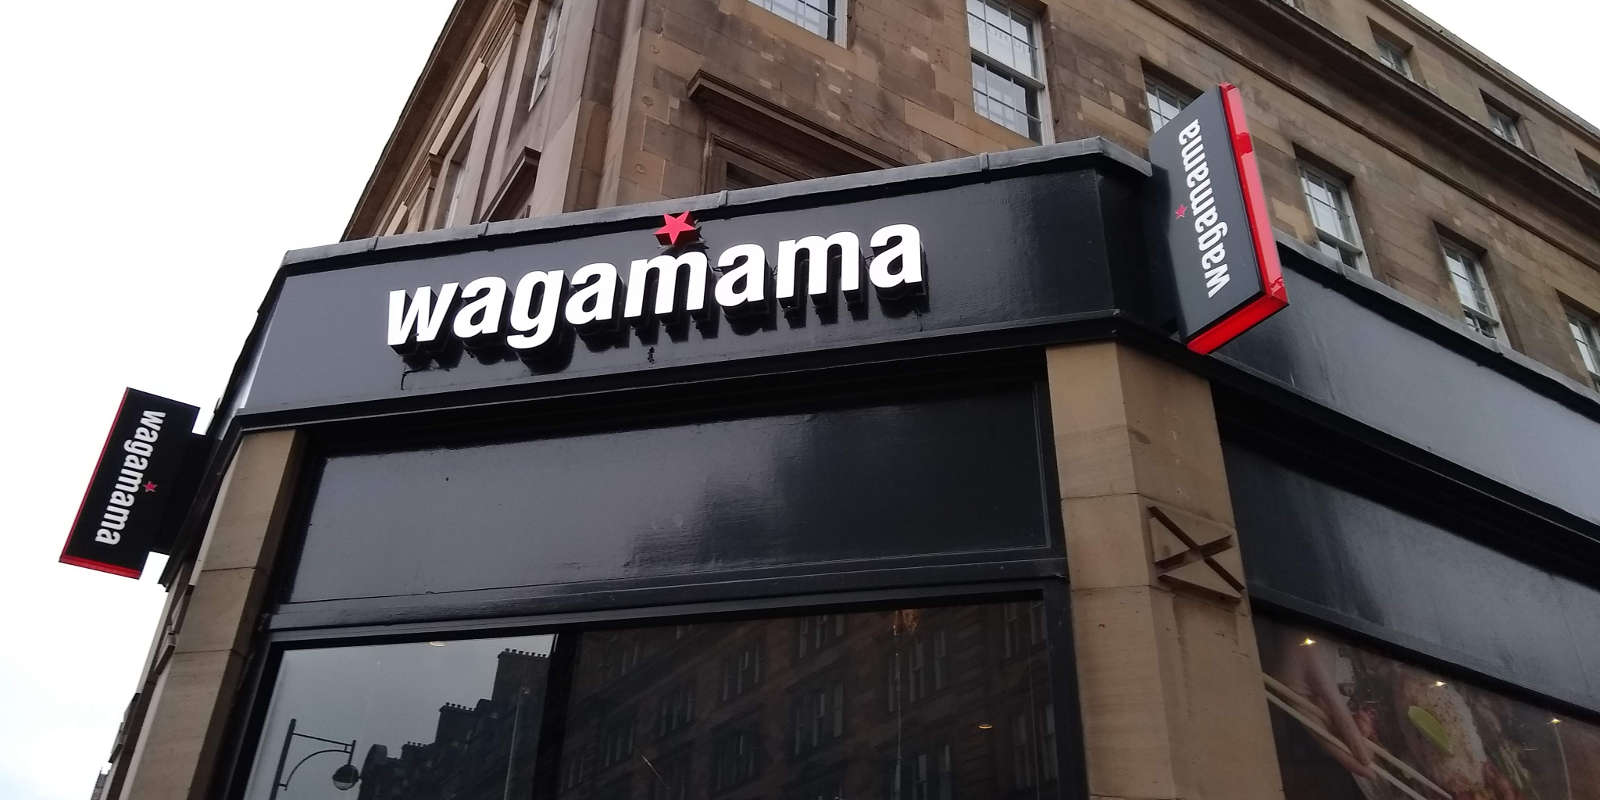 Sign above door at Wagamama restaurant